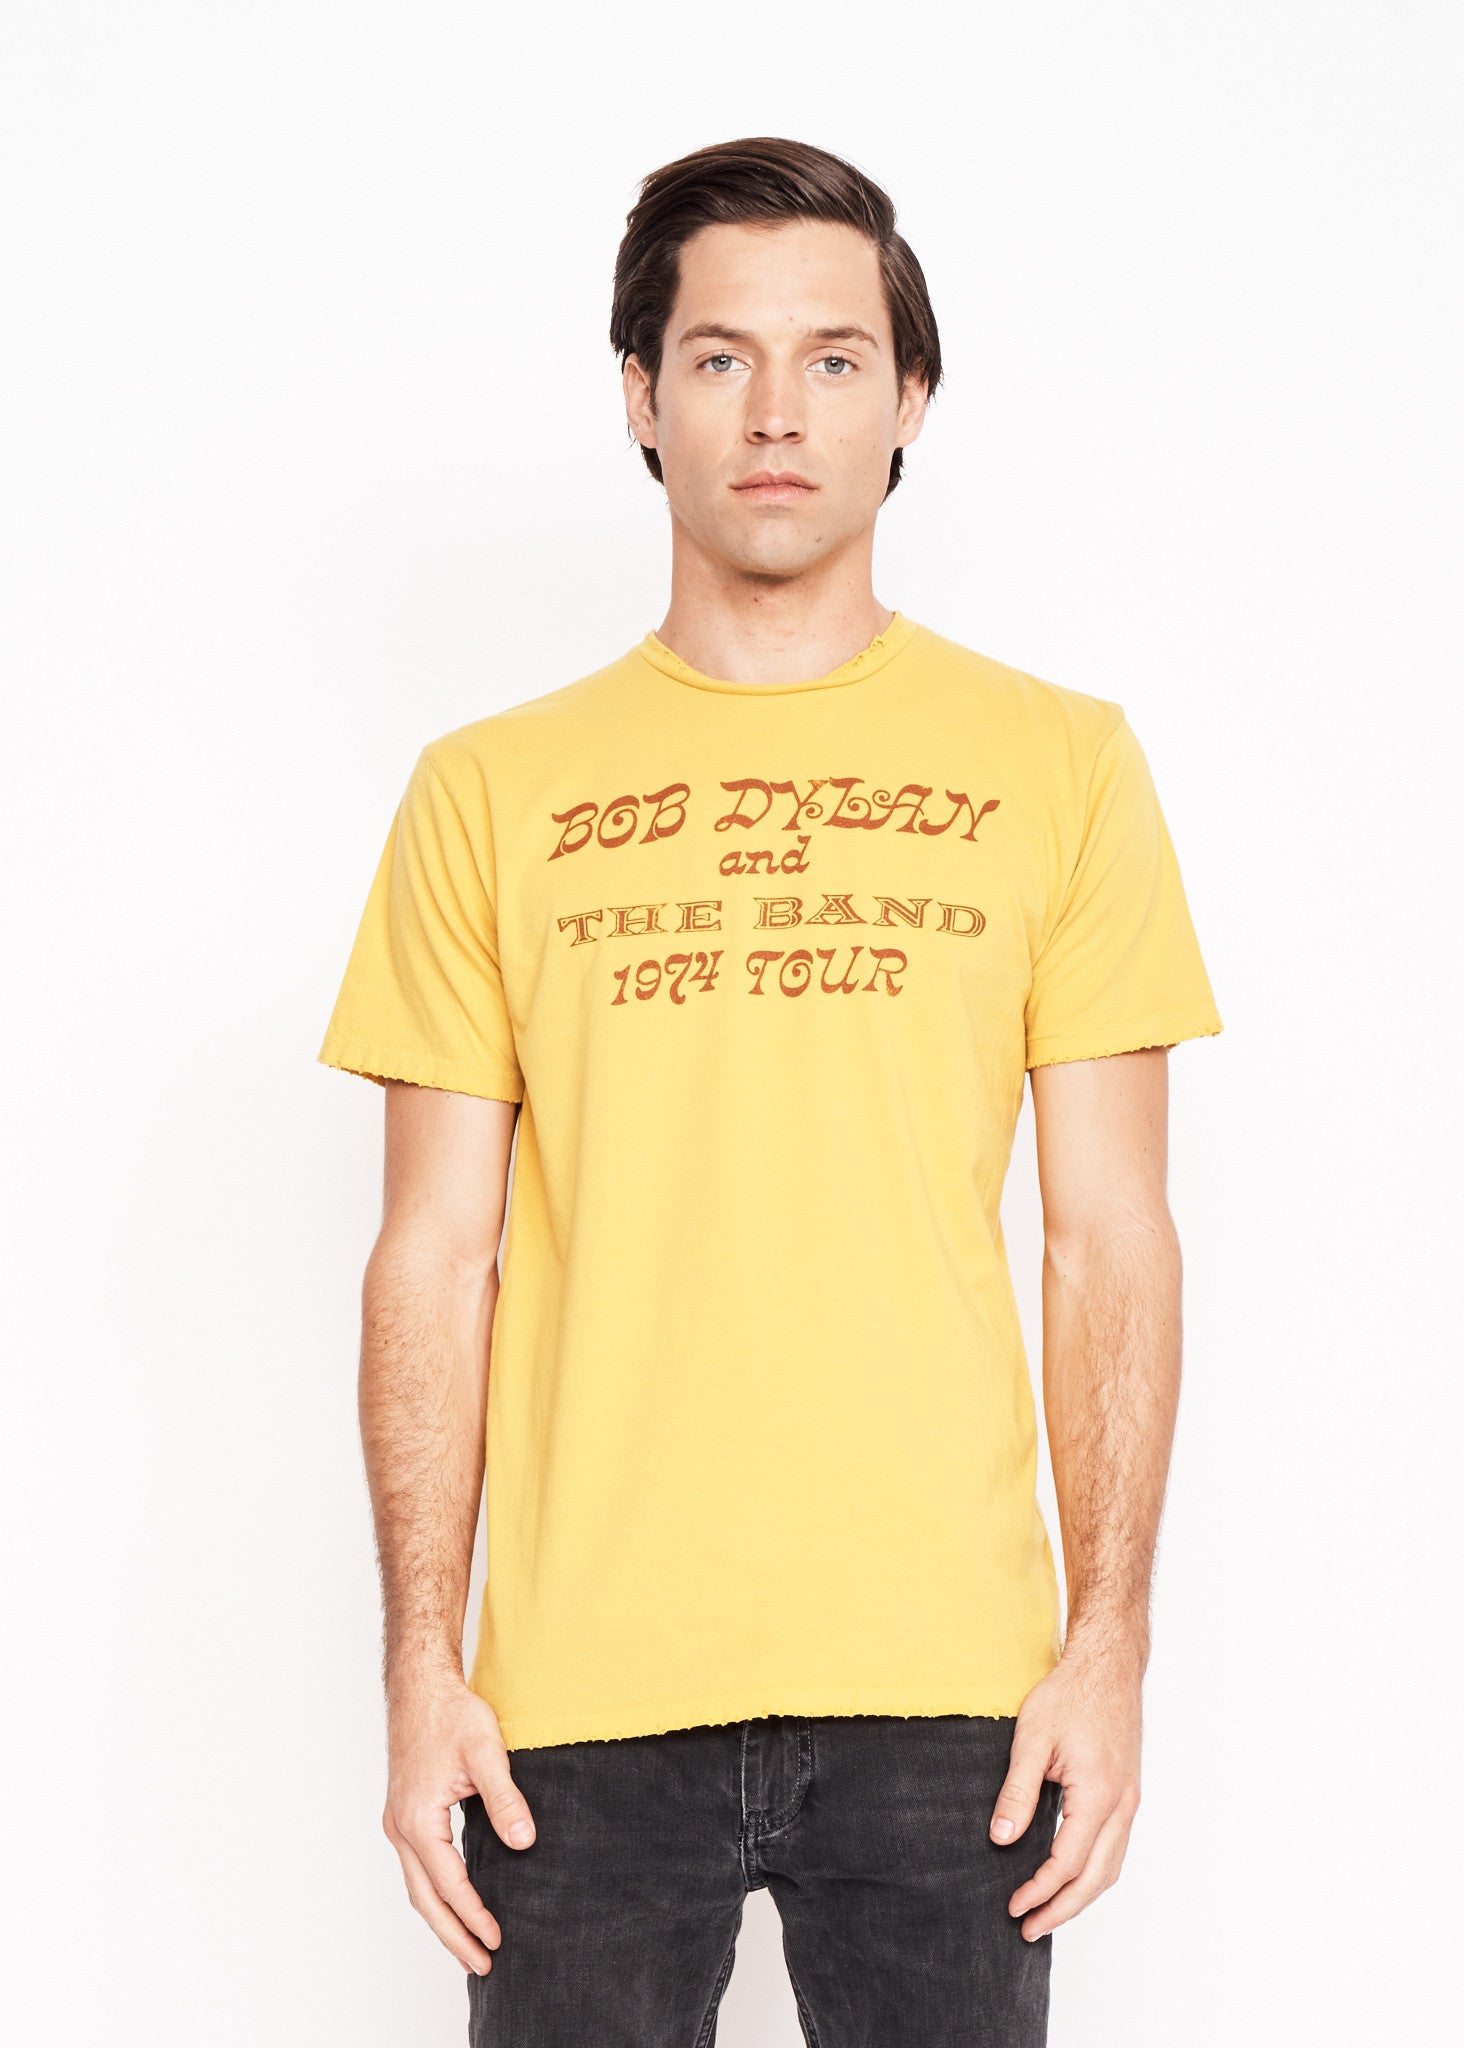 Bob Dylan and The Band Showbill Men's Crew - Mustard